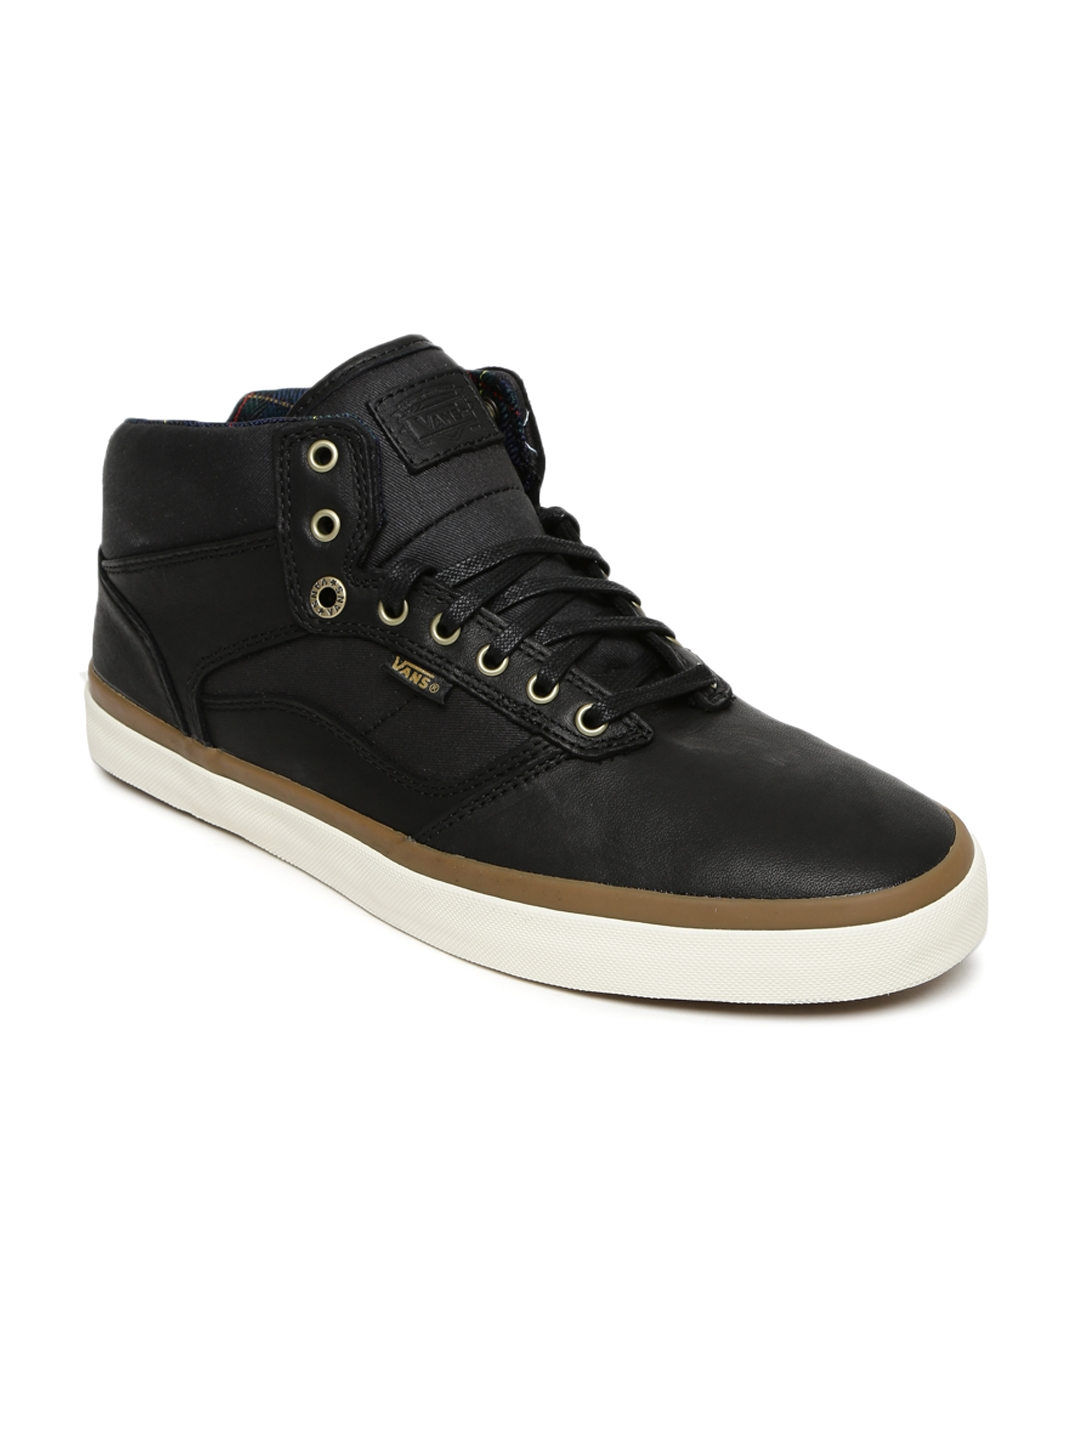 e92ec1703b6349 Buy Vans Men Black Bedford Leather Sneakers - Casual Shoes for Men ...